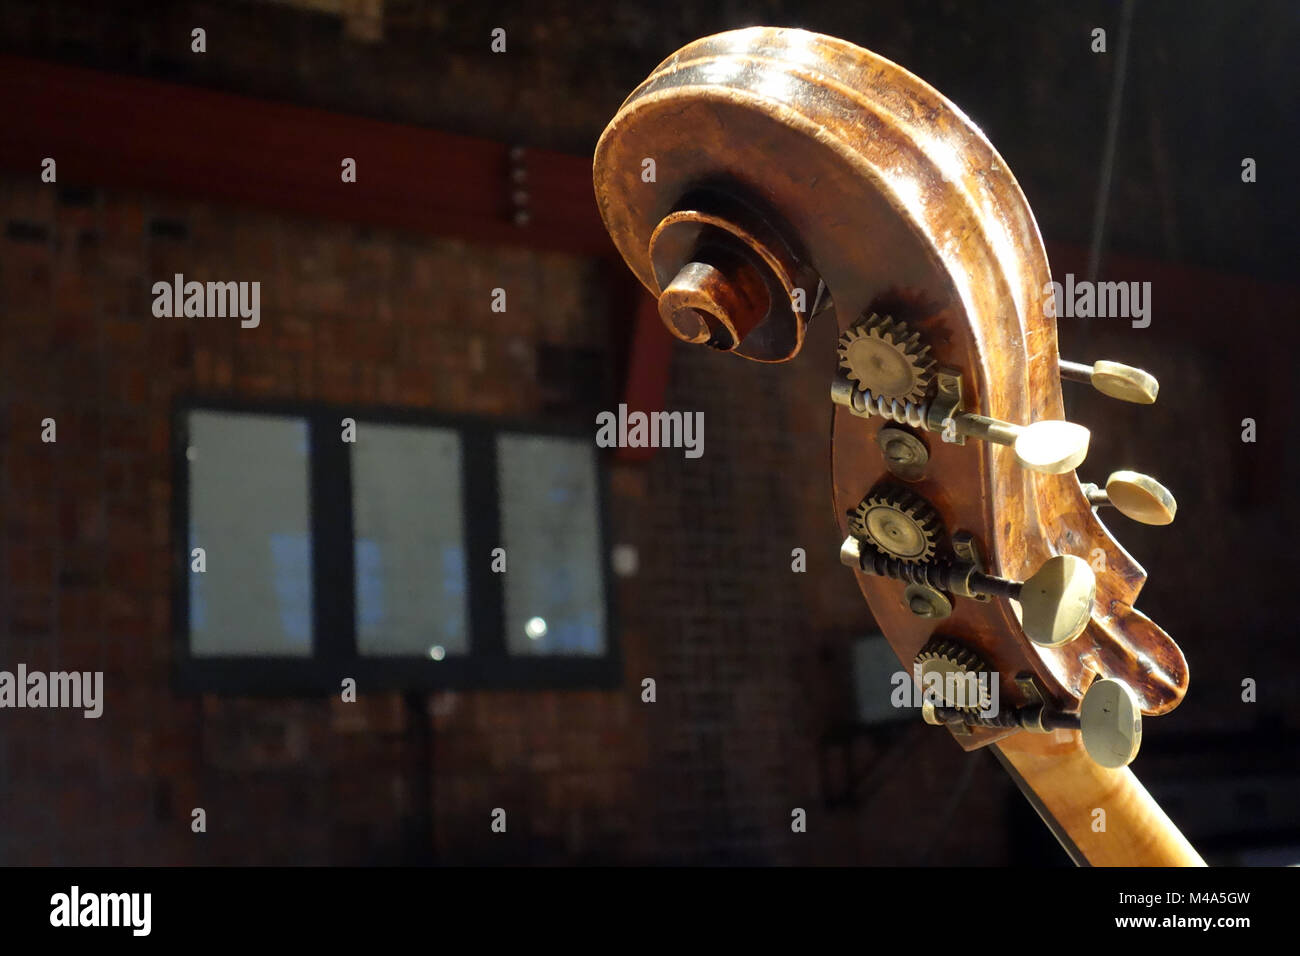 Contrabass, snail at the end of the vertebral column - Stock Image